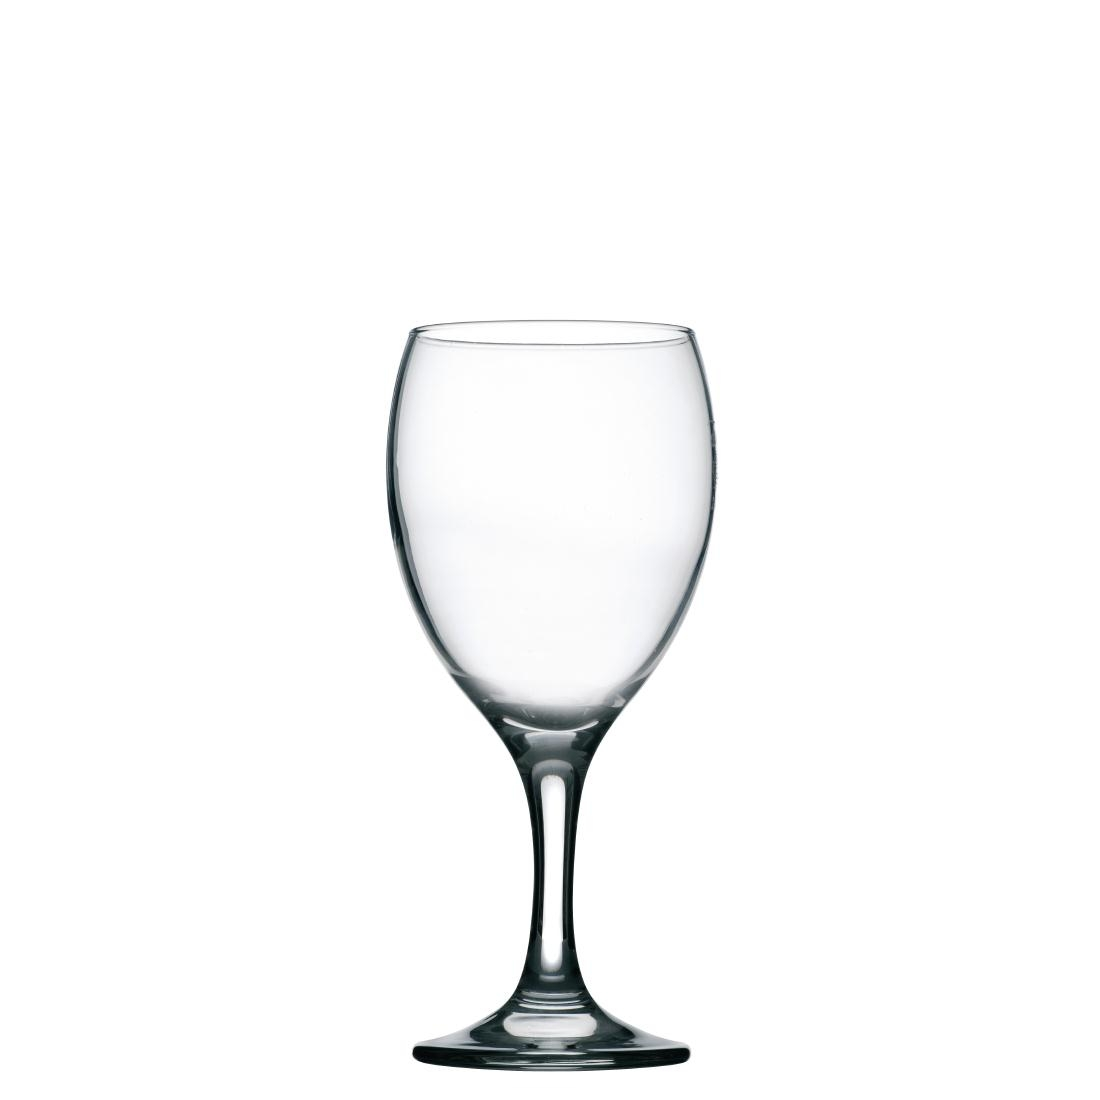 Utopia Imperial Wine Glasses 340ml CE Marked at 250ml